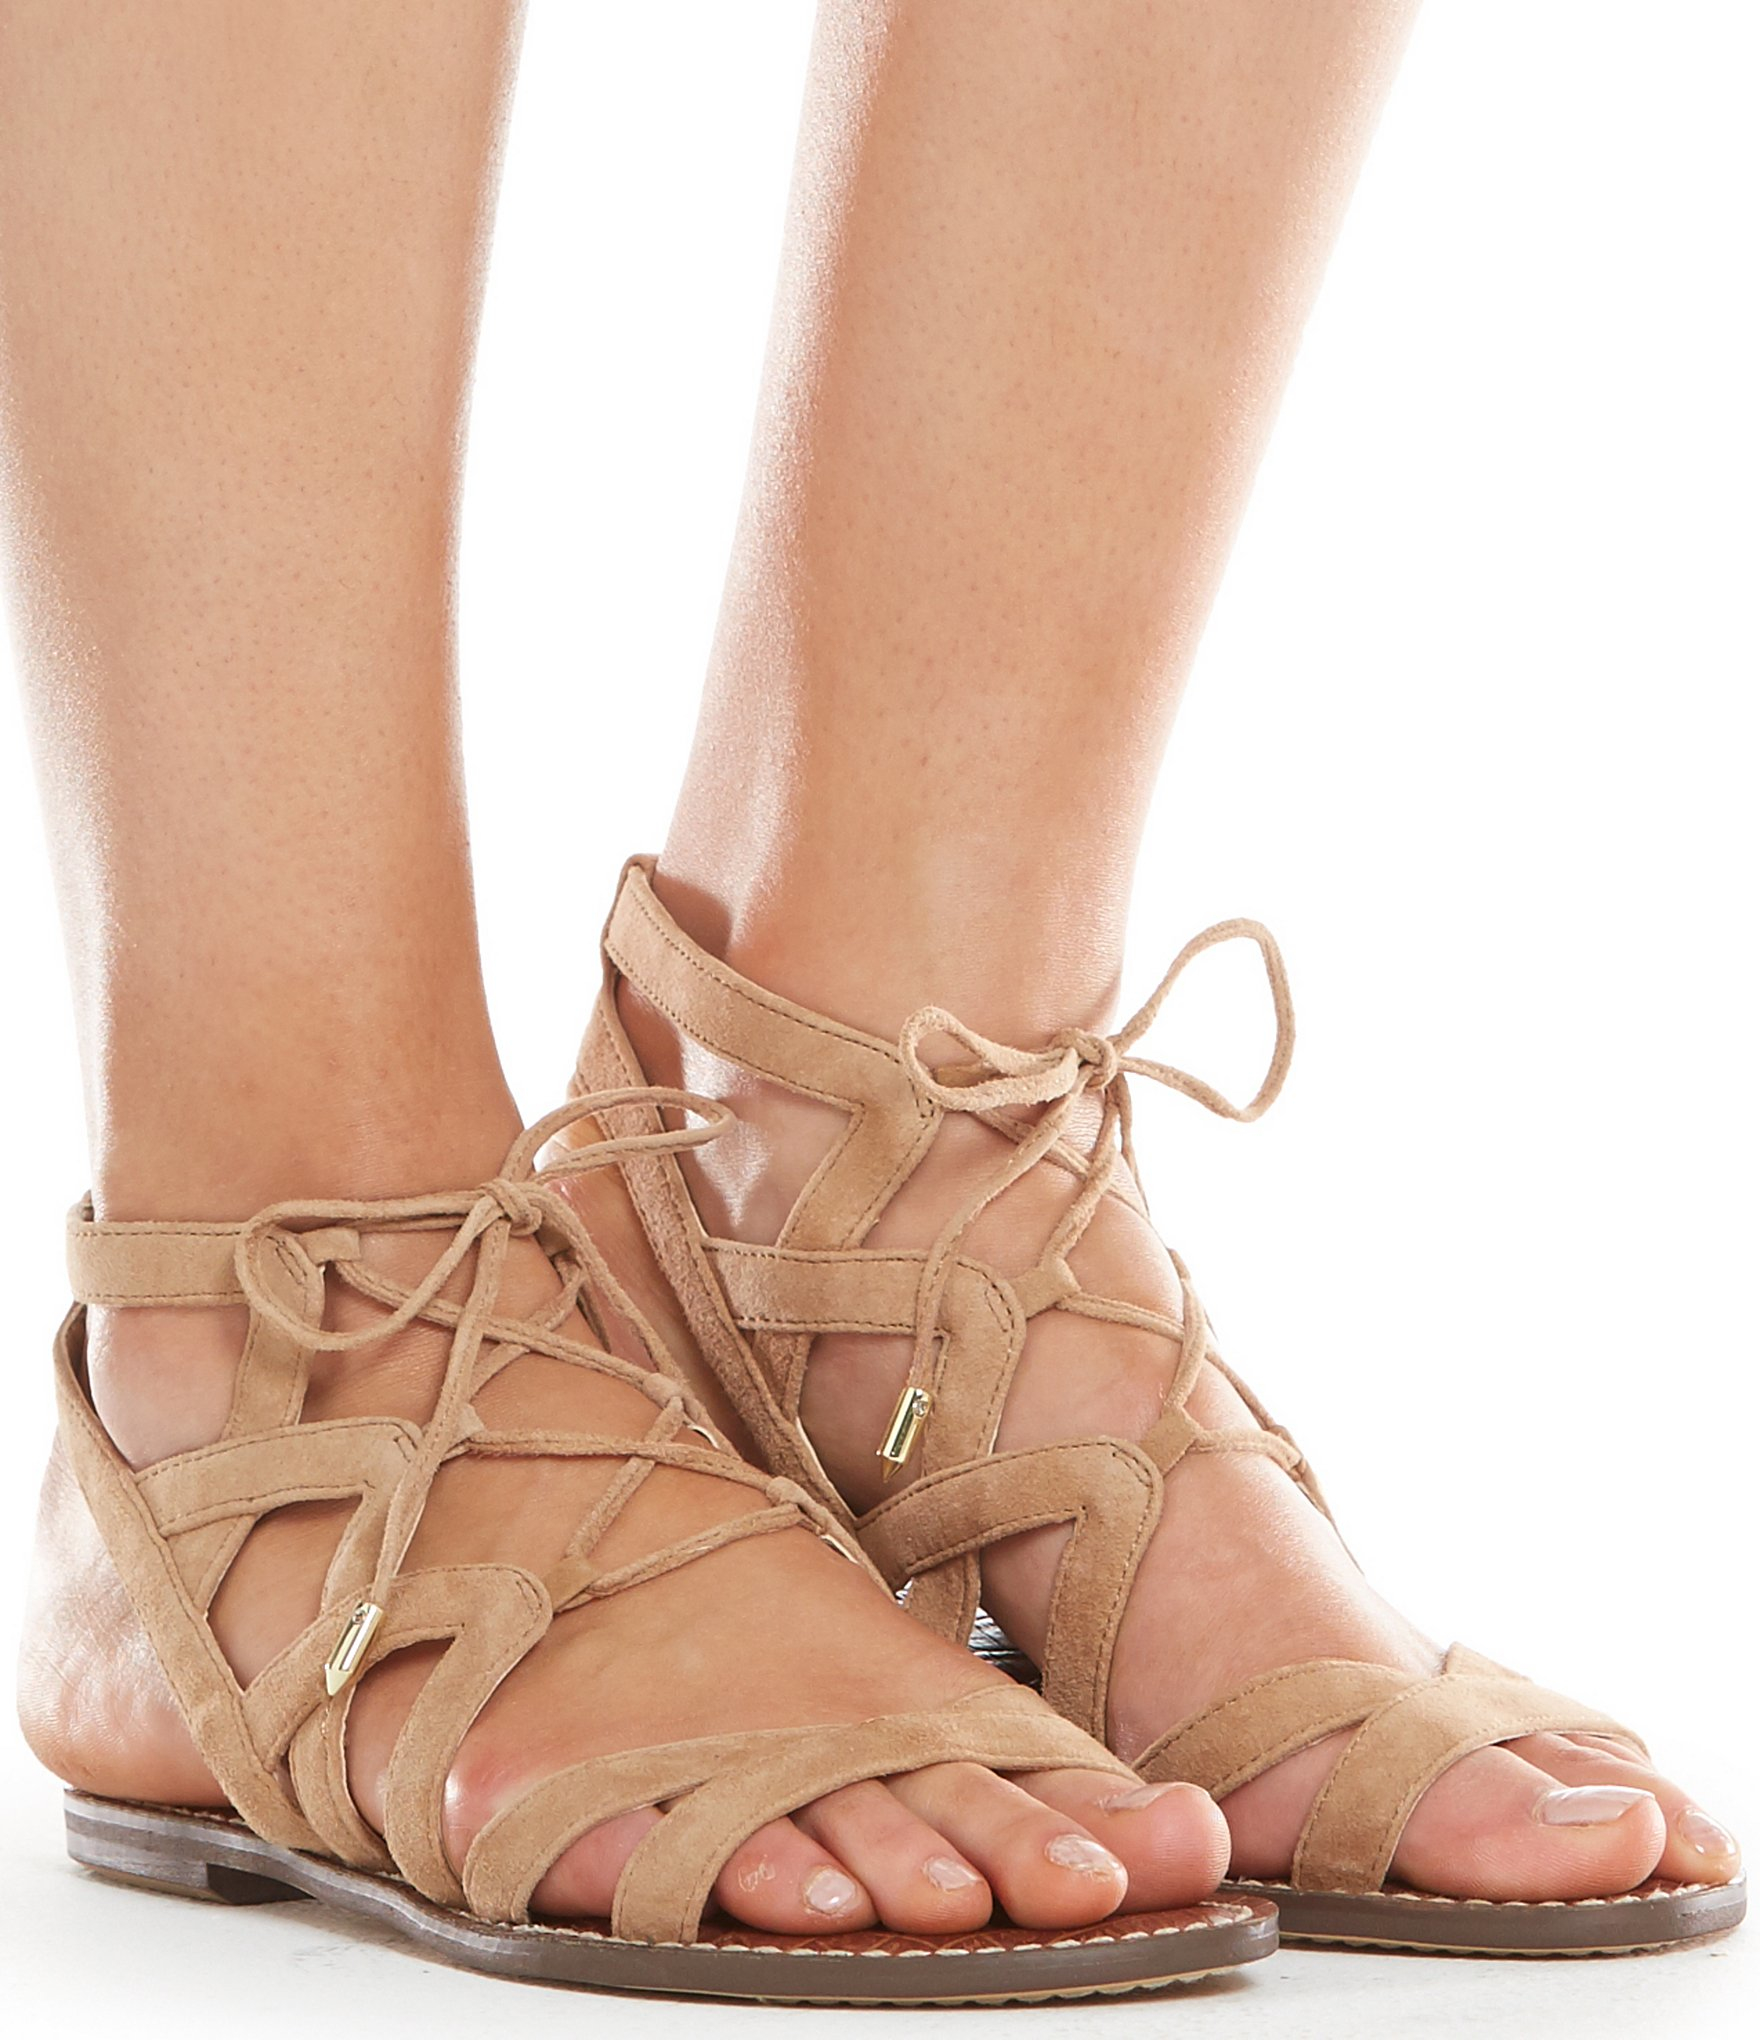 aaced0fa9cf Lyst - Sam Edelman Gemma Lace-up Ghillie Sandals in Natural